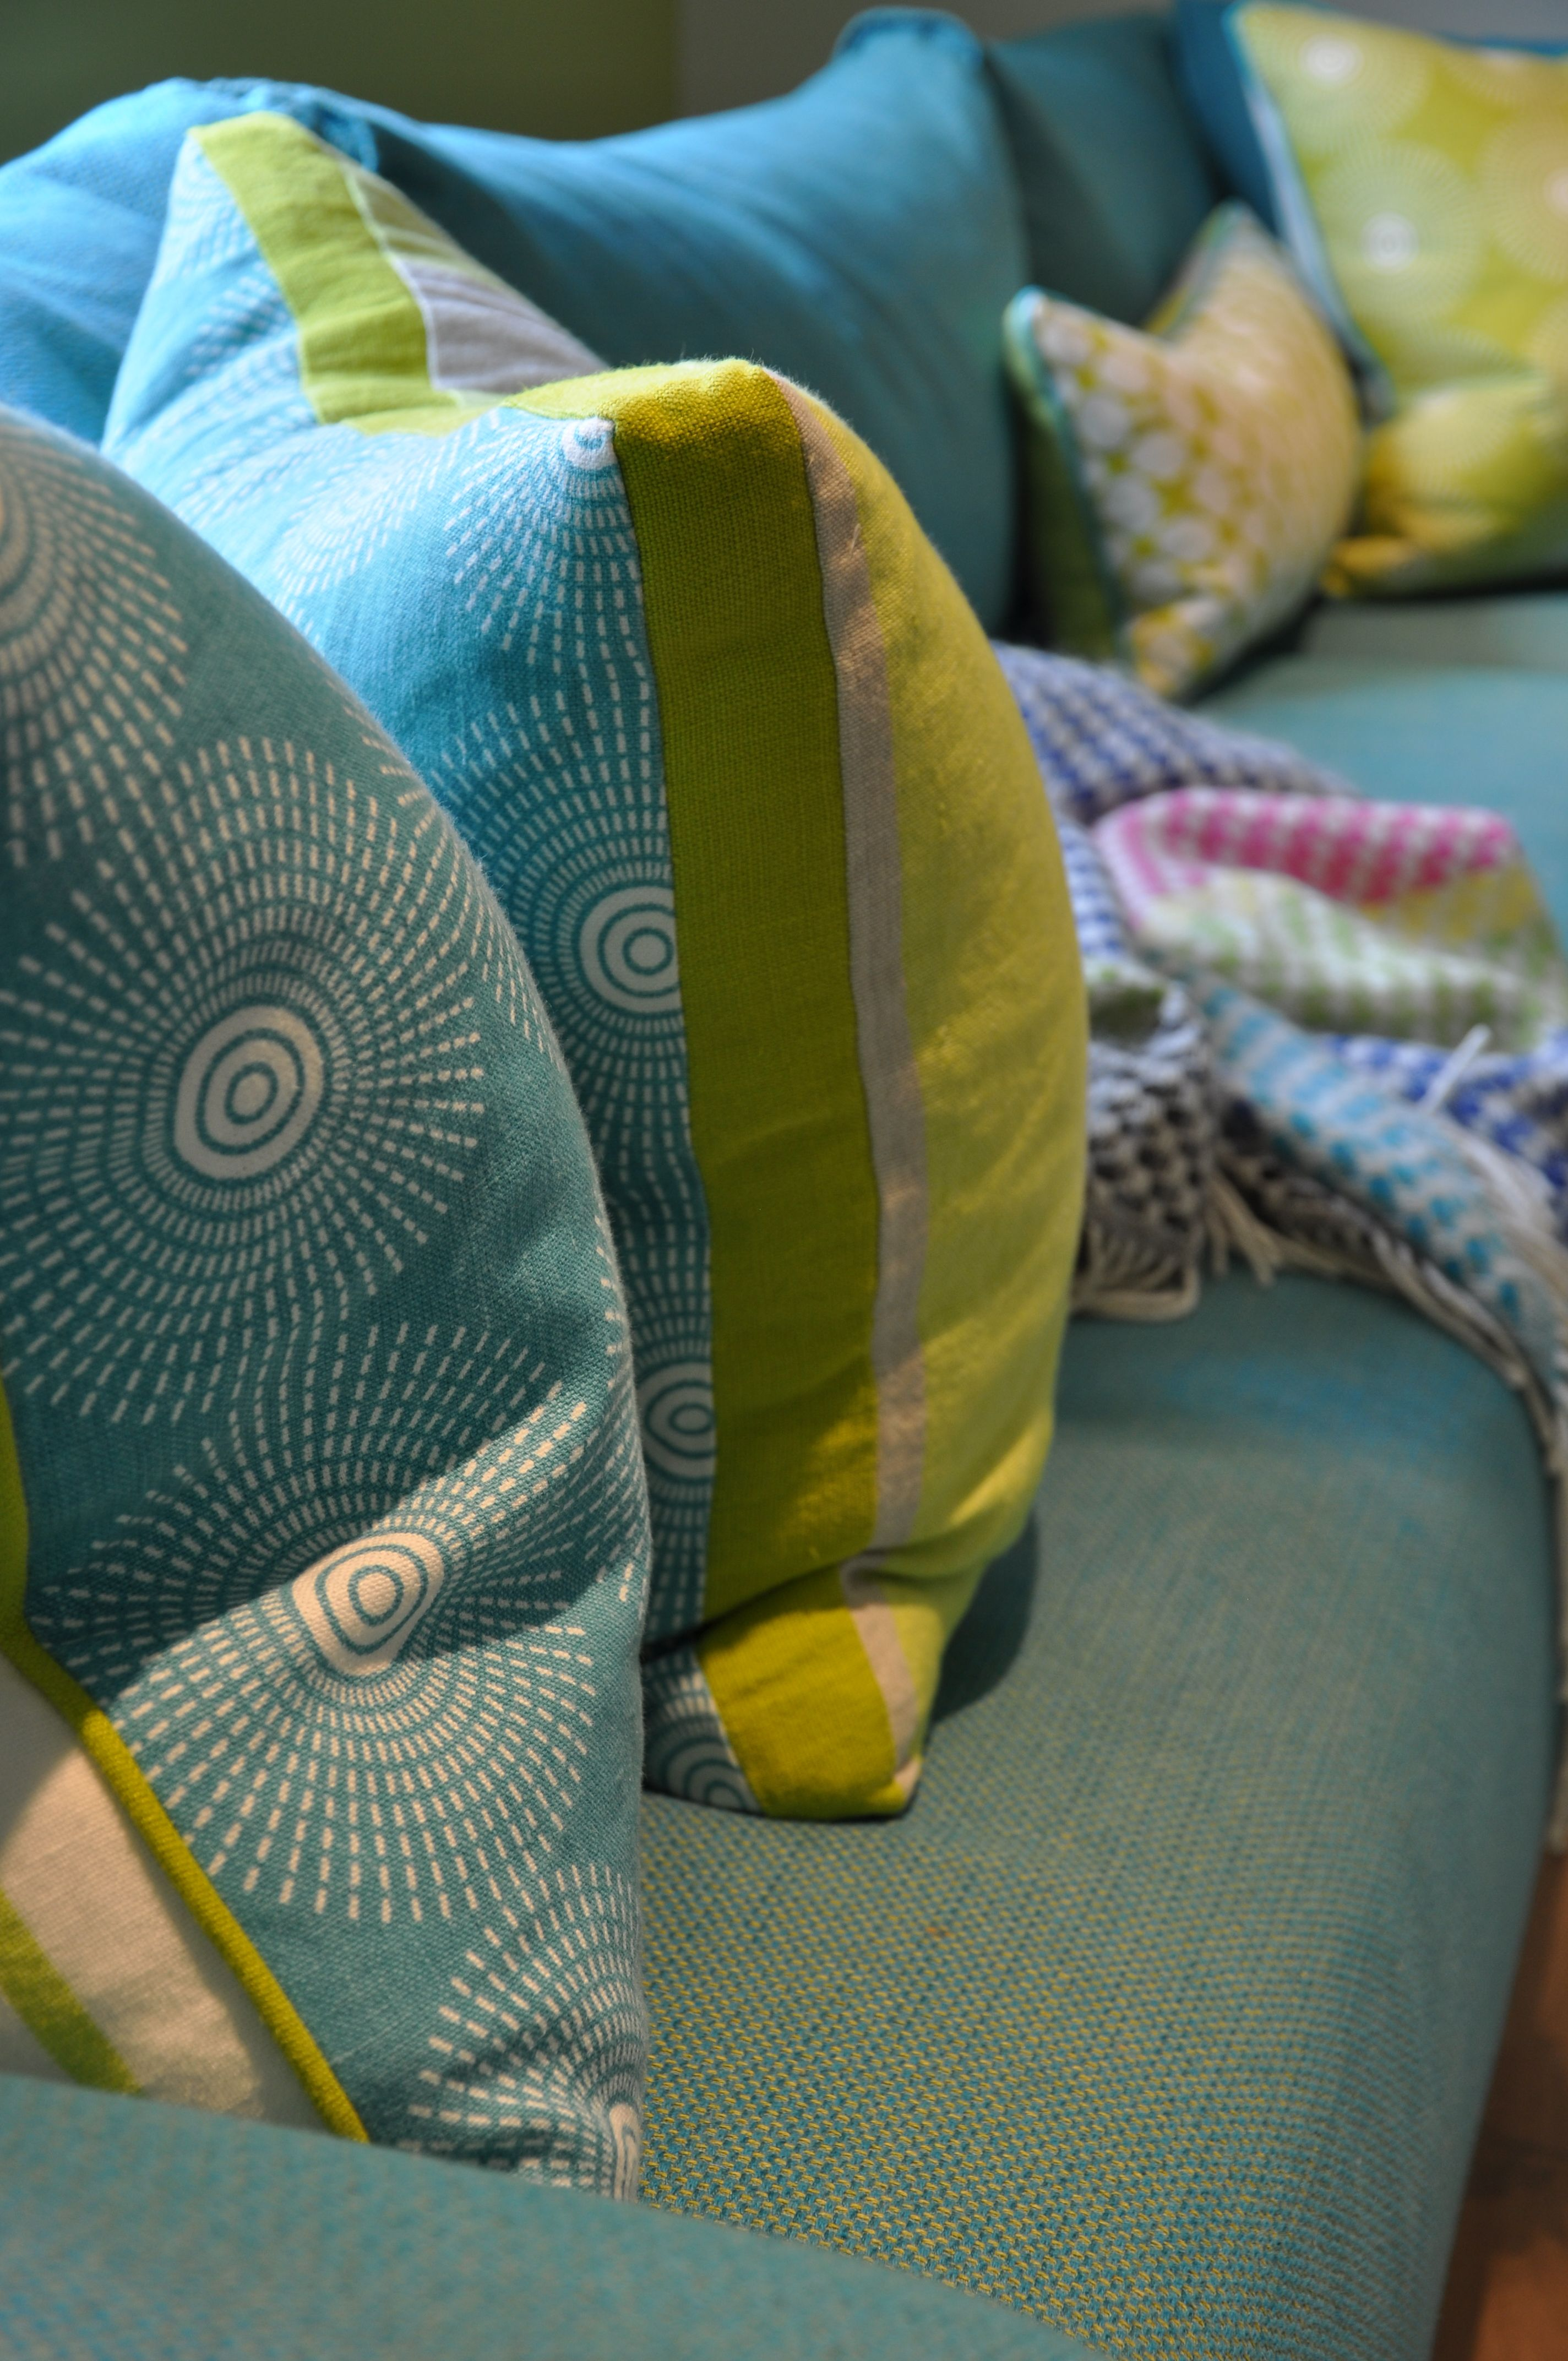 Colourful and vibrant scatter cushions and throws perfect for a